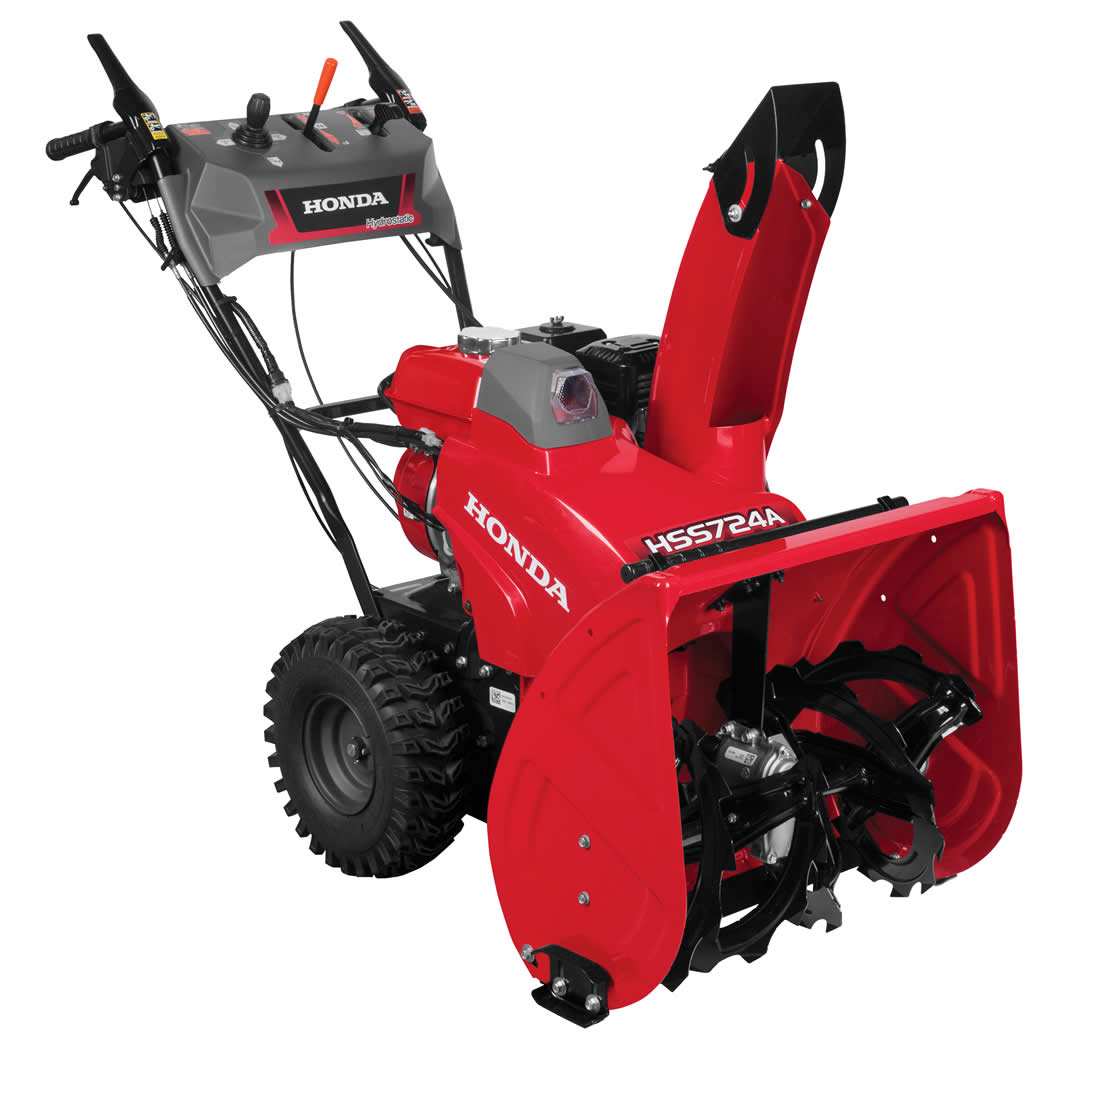 Picture of Honda HSS724AAW Snow Blower, Gas, 196 cc Engine Displacement, 4-Cycle OHV Engine, 2 -Stage, 49 ft Throw